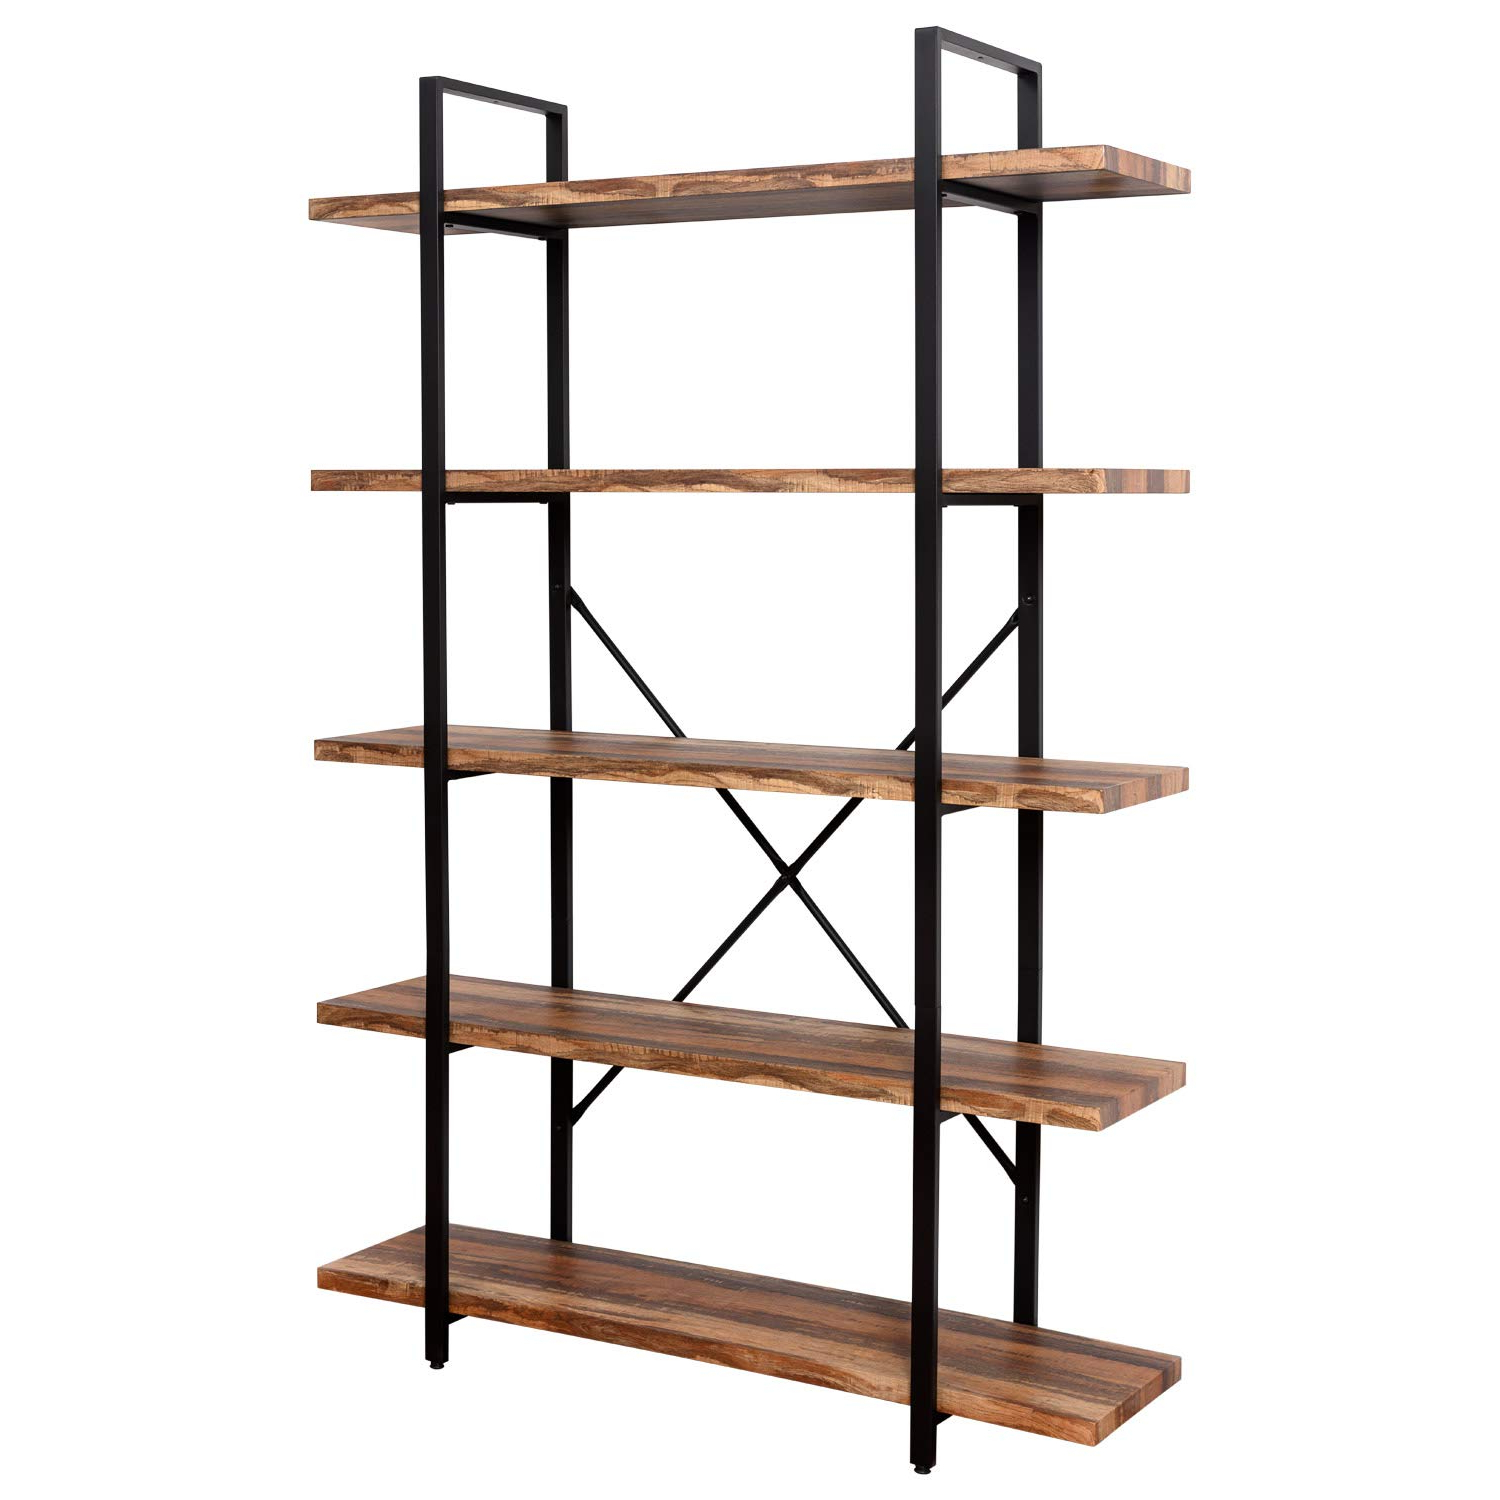 Most Popular Ironck Bookshelf And Bookcase 5 Tier, 130Lbs/shelf Load Capacity,  Industrial Bookshelves Home Office Furniture, Wood And Metal Frame … Inside Rech 4 Tier Etagere Bookcases (View 9 of 20)